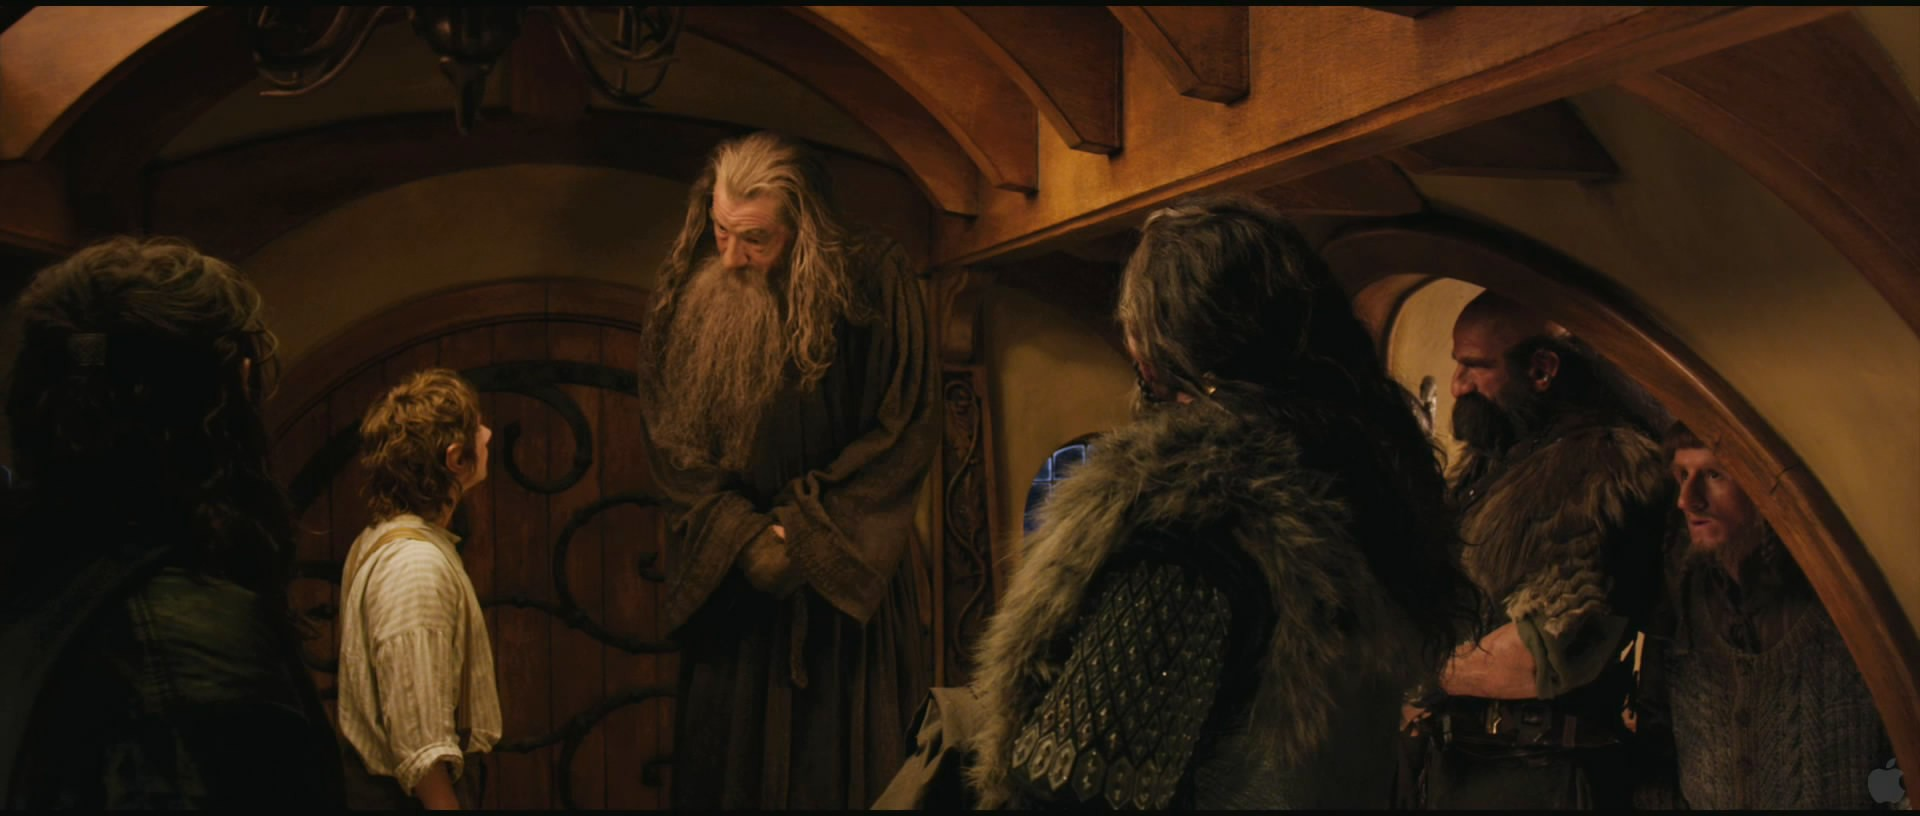 Movie The Hobbit Wallpaper 1920x816 Movie The Hobbit 1920x816